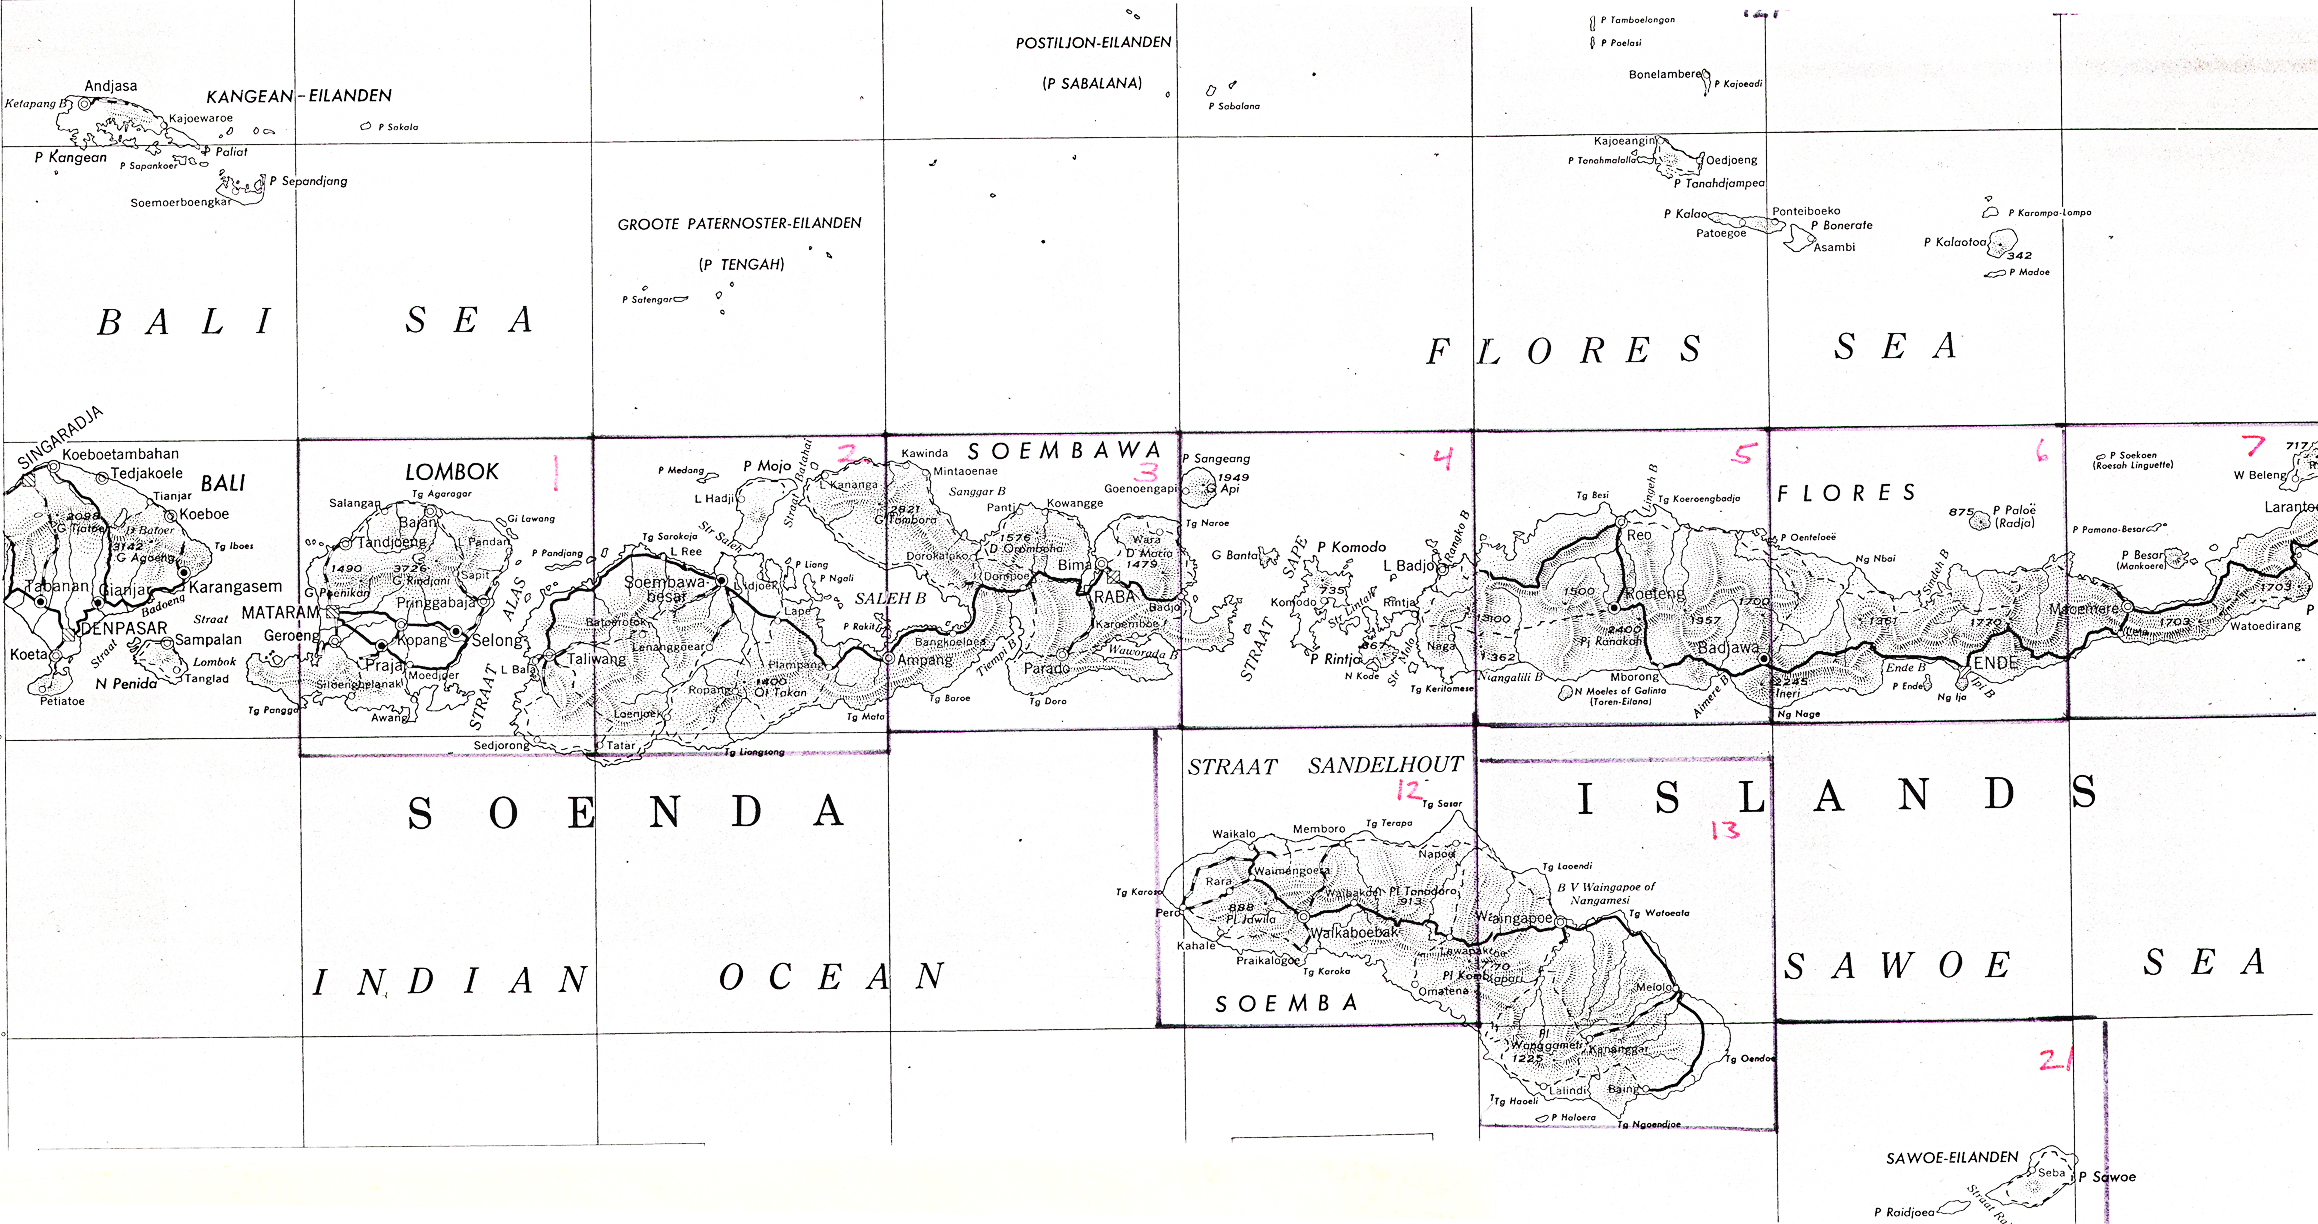 Lesser Sunda Islands AMS Topographic Maps - Perry-Castañeda Map